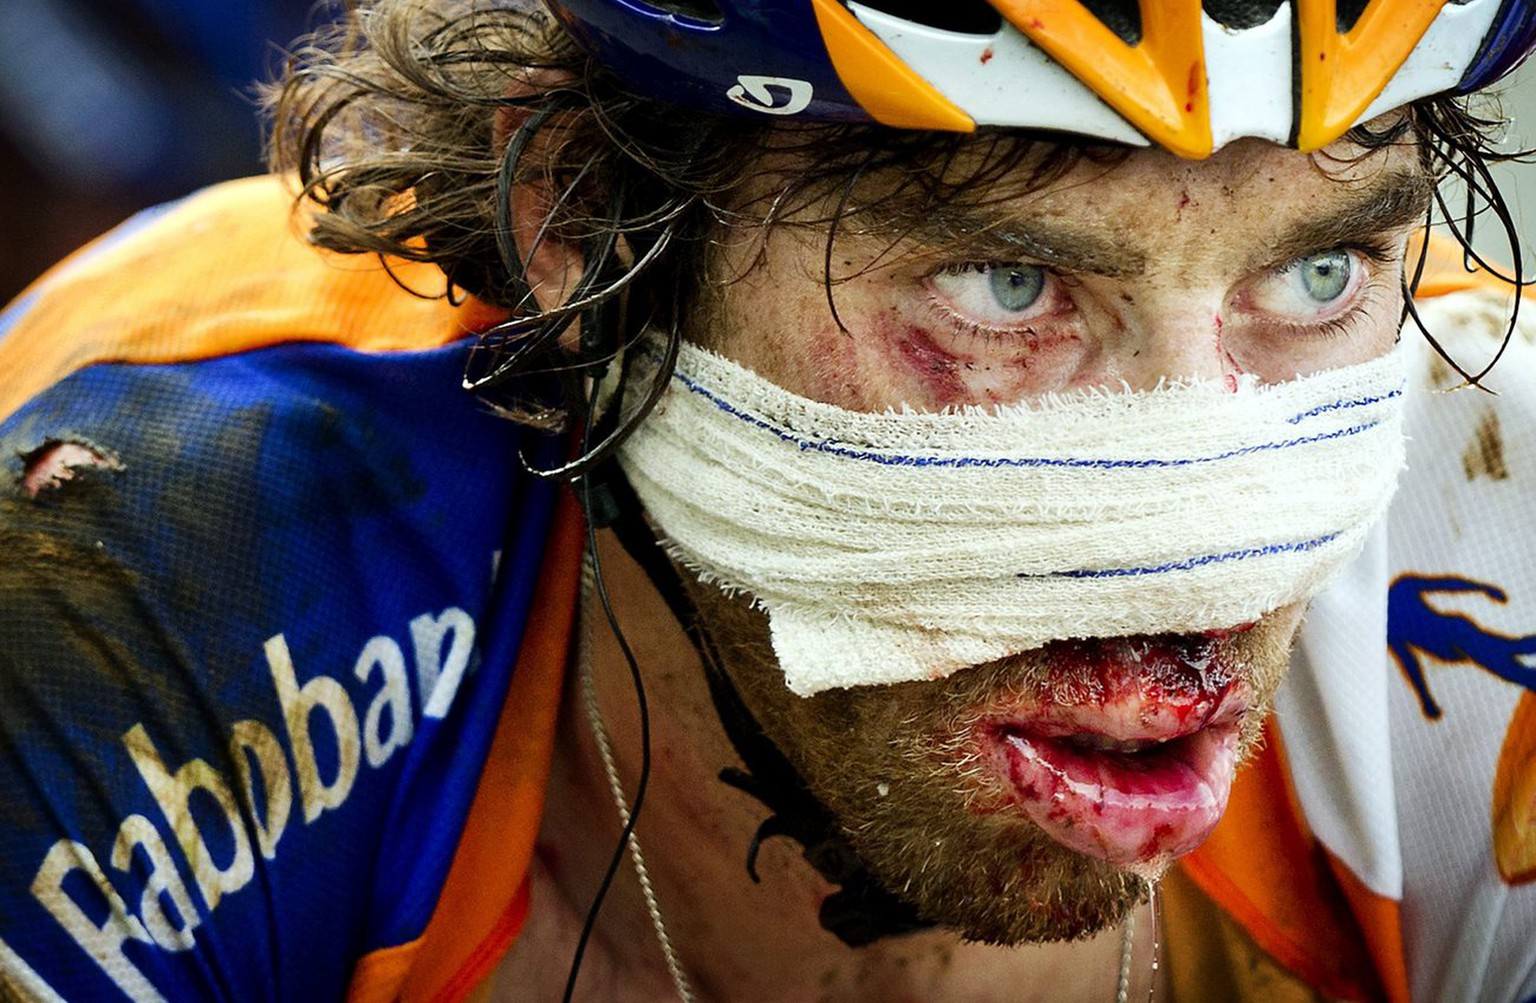 A photograph made available on 17 July of Dutch Rabo rider Laurens ten Dam is covered with blood after he crashed on the descent of the Col d'Agnes during the fourteenth stage of the Tour de France, France, 16 July 2011. The Dutch rider finished the stage with gauze wrapped around his face, covering his bloodied nose. (KEYSTONE/KEYSTONE/EPA/KOEN VAN WEEL)